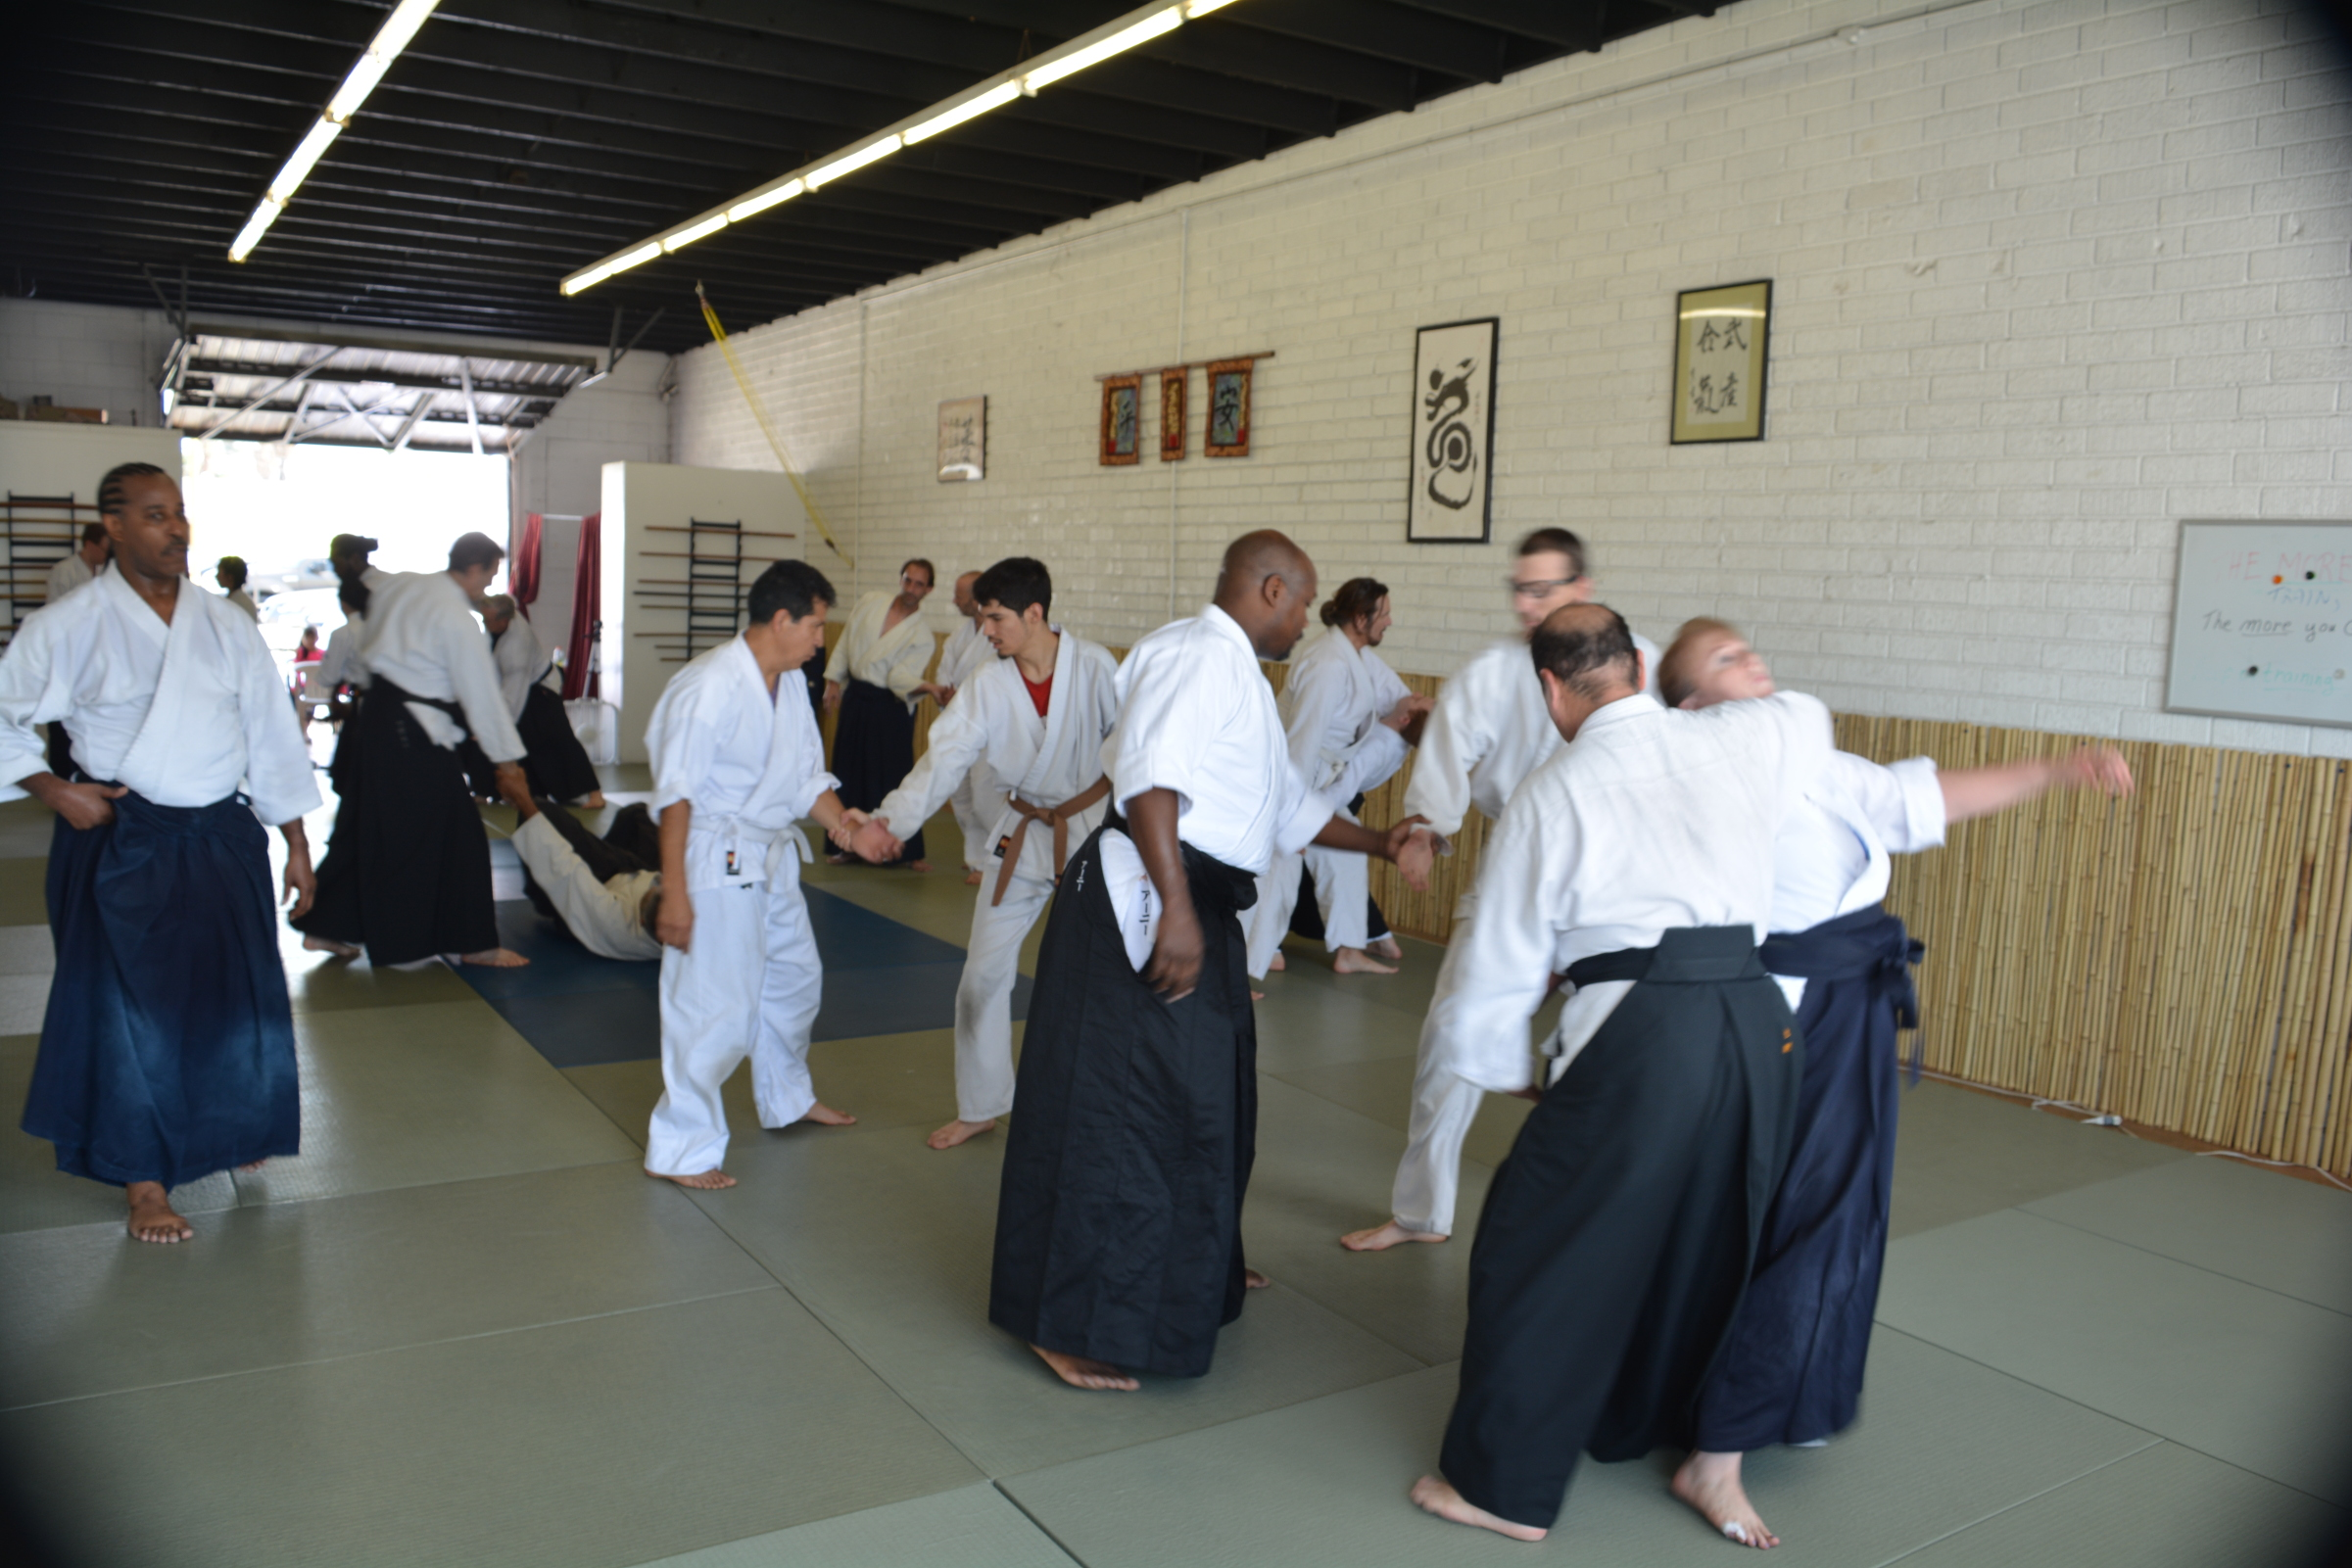 Waite teaches seminar 2